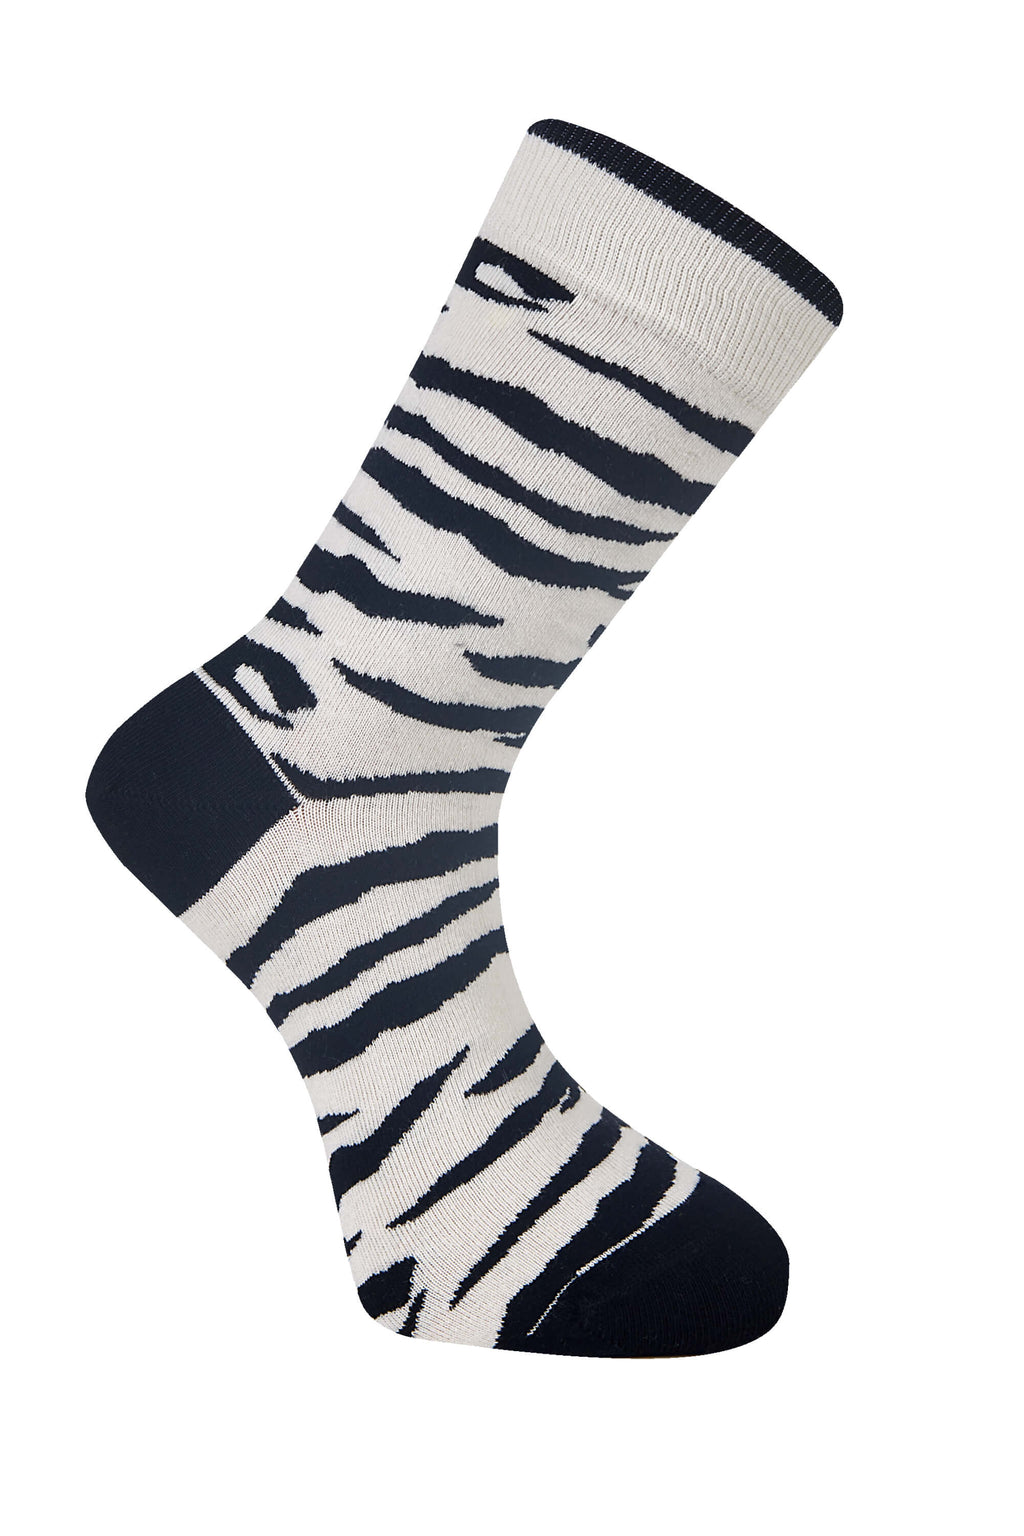 Komodo - Animal Socks - INGAR